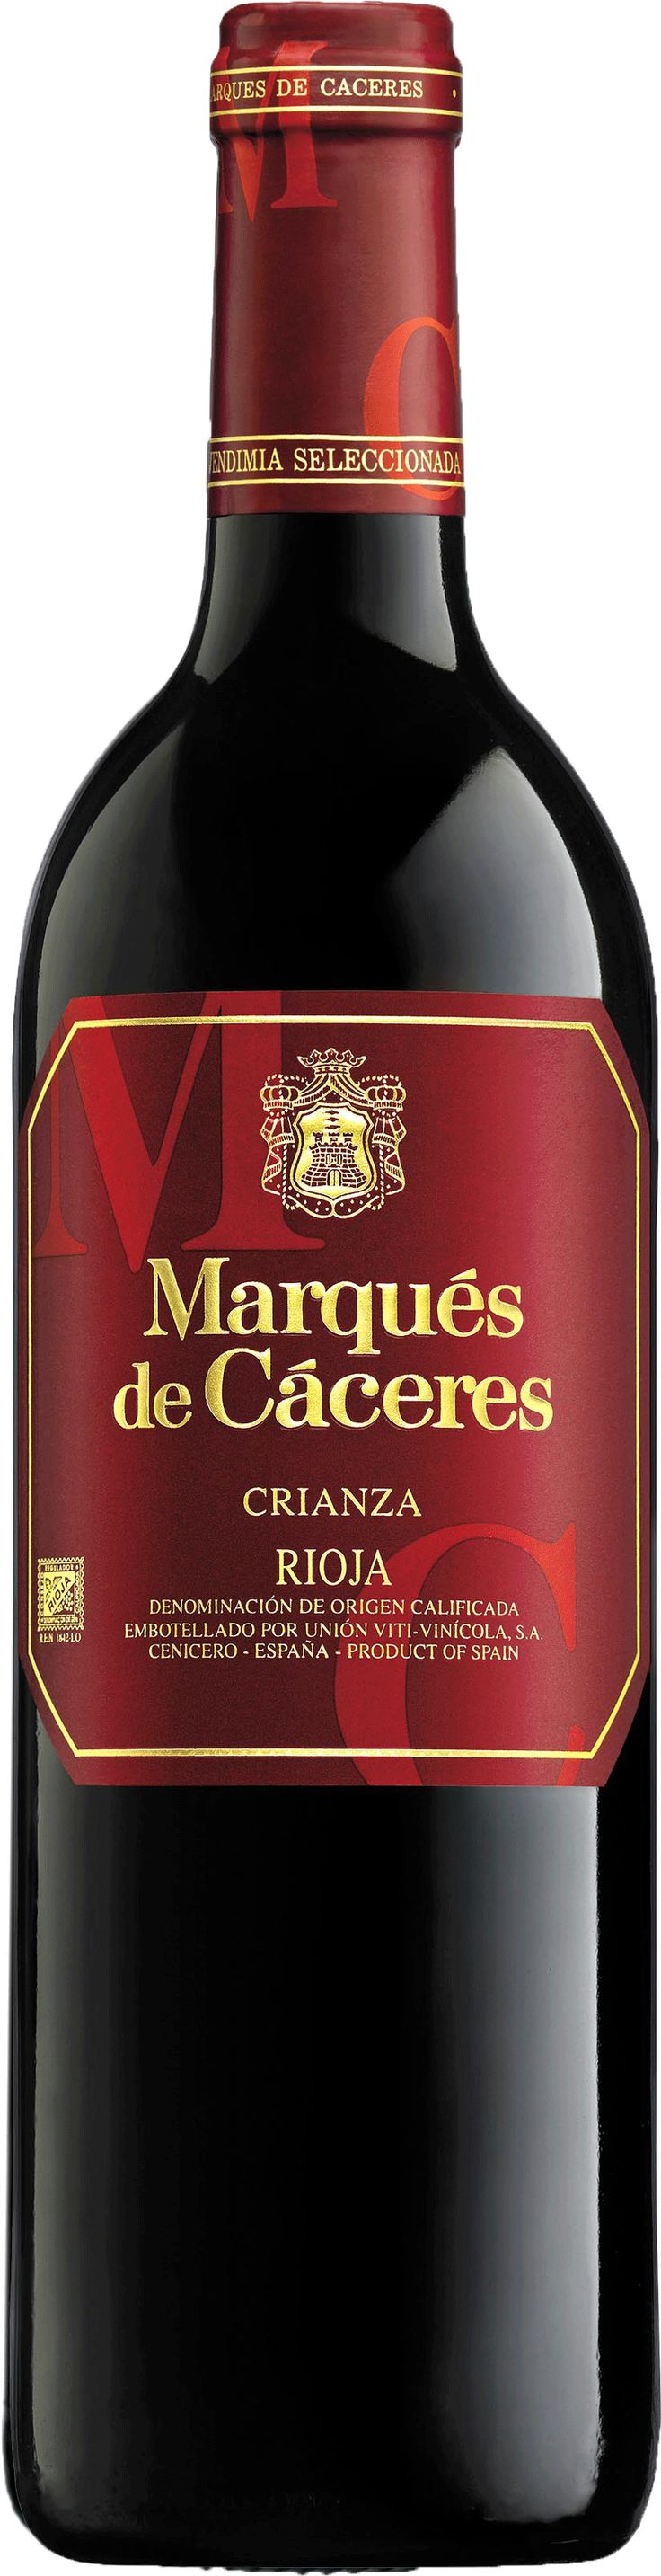 Marques de Caceres CRIANZA. A Spanish Red Wine from la Rioja.